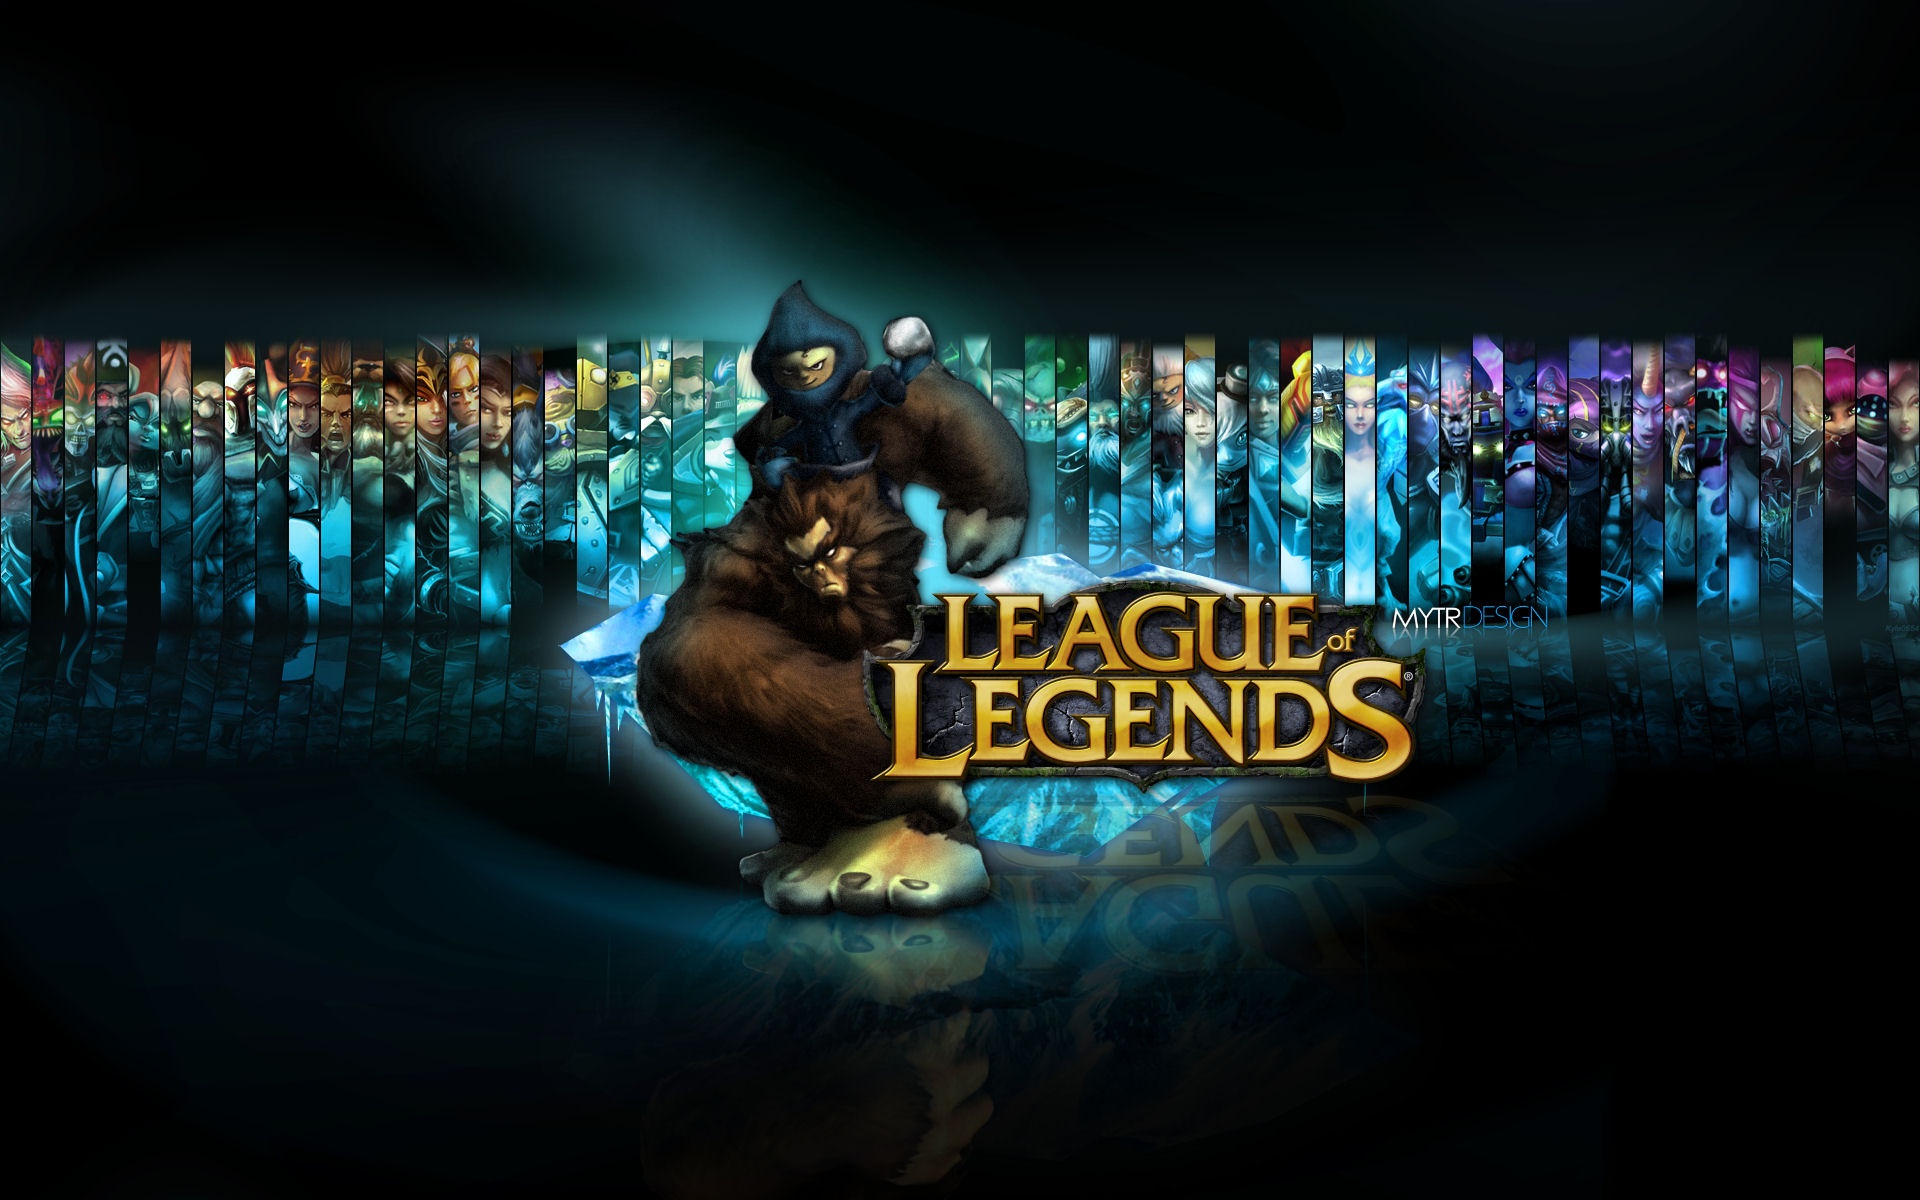 League of legends wallpaper pack - League Of Legends League Of Legends Wallpaper 29563263 Fanpop